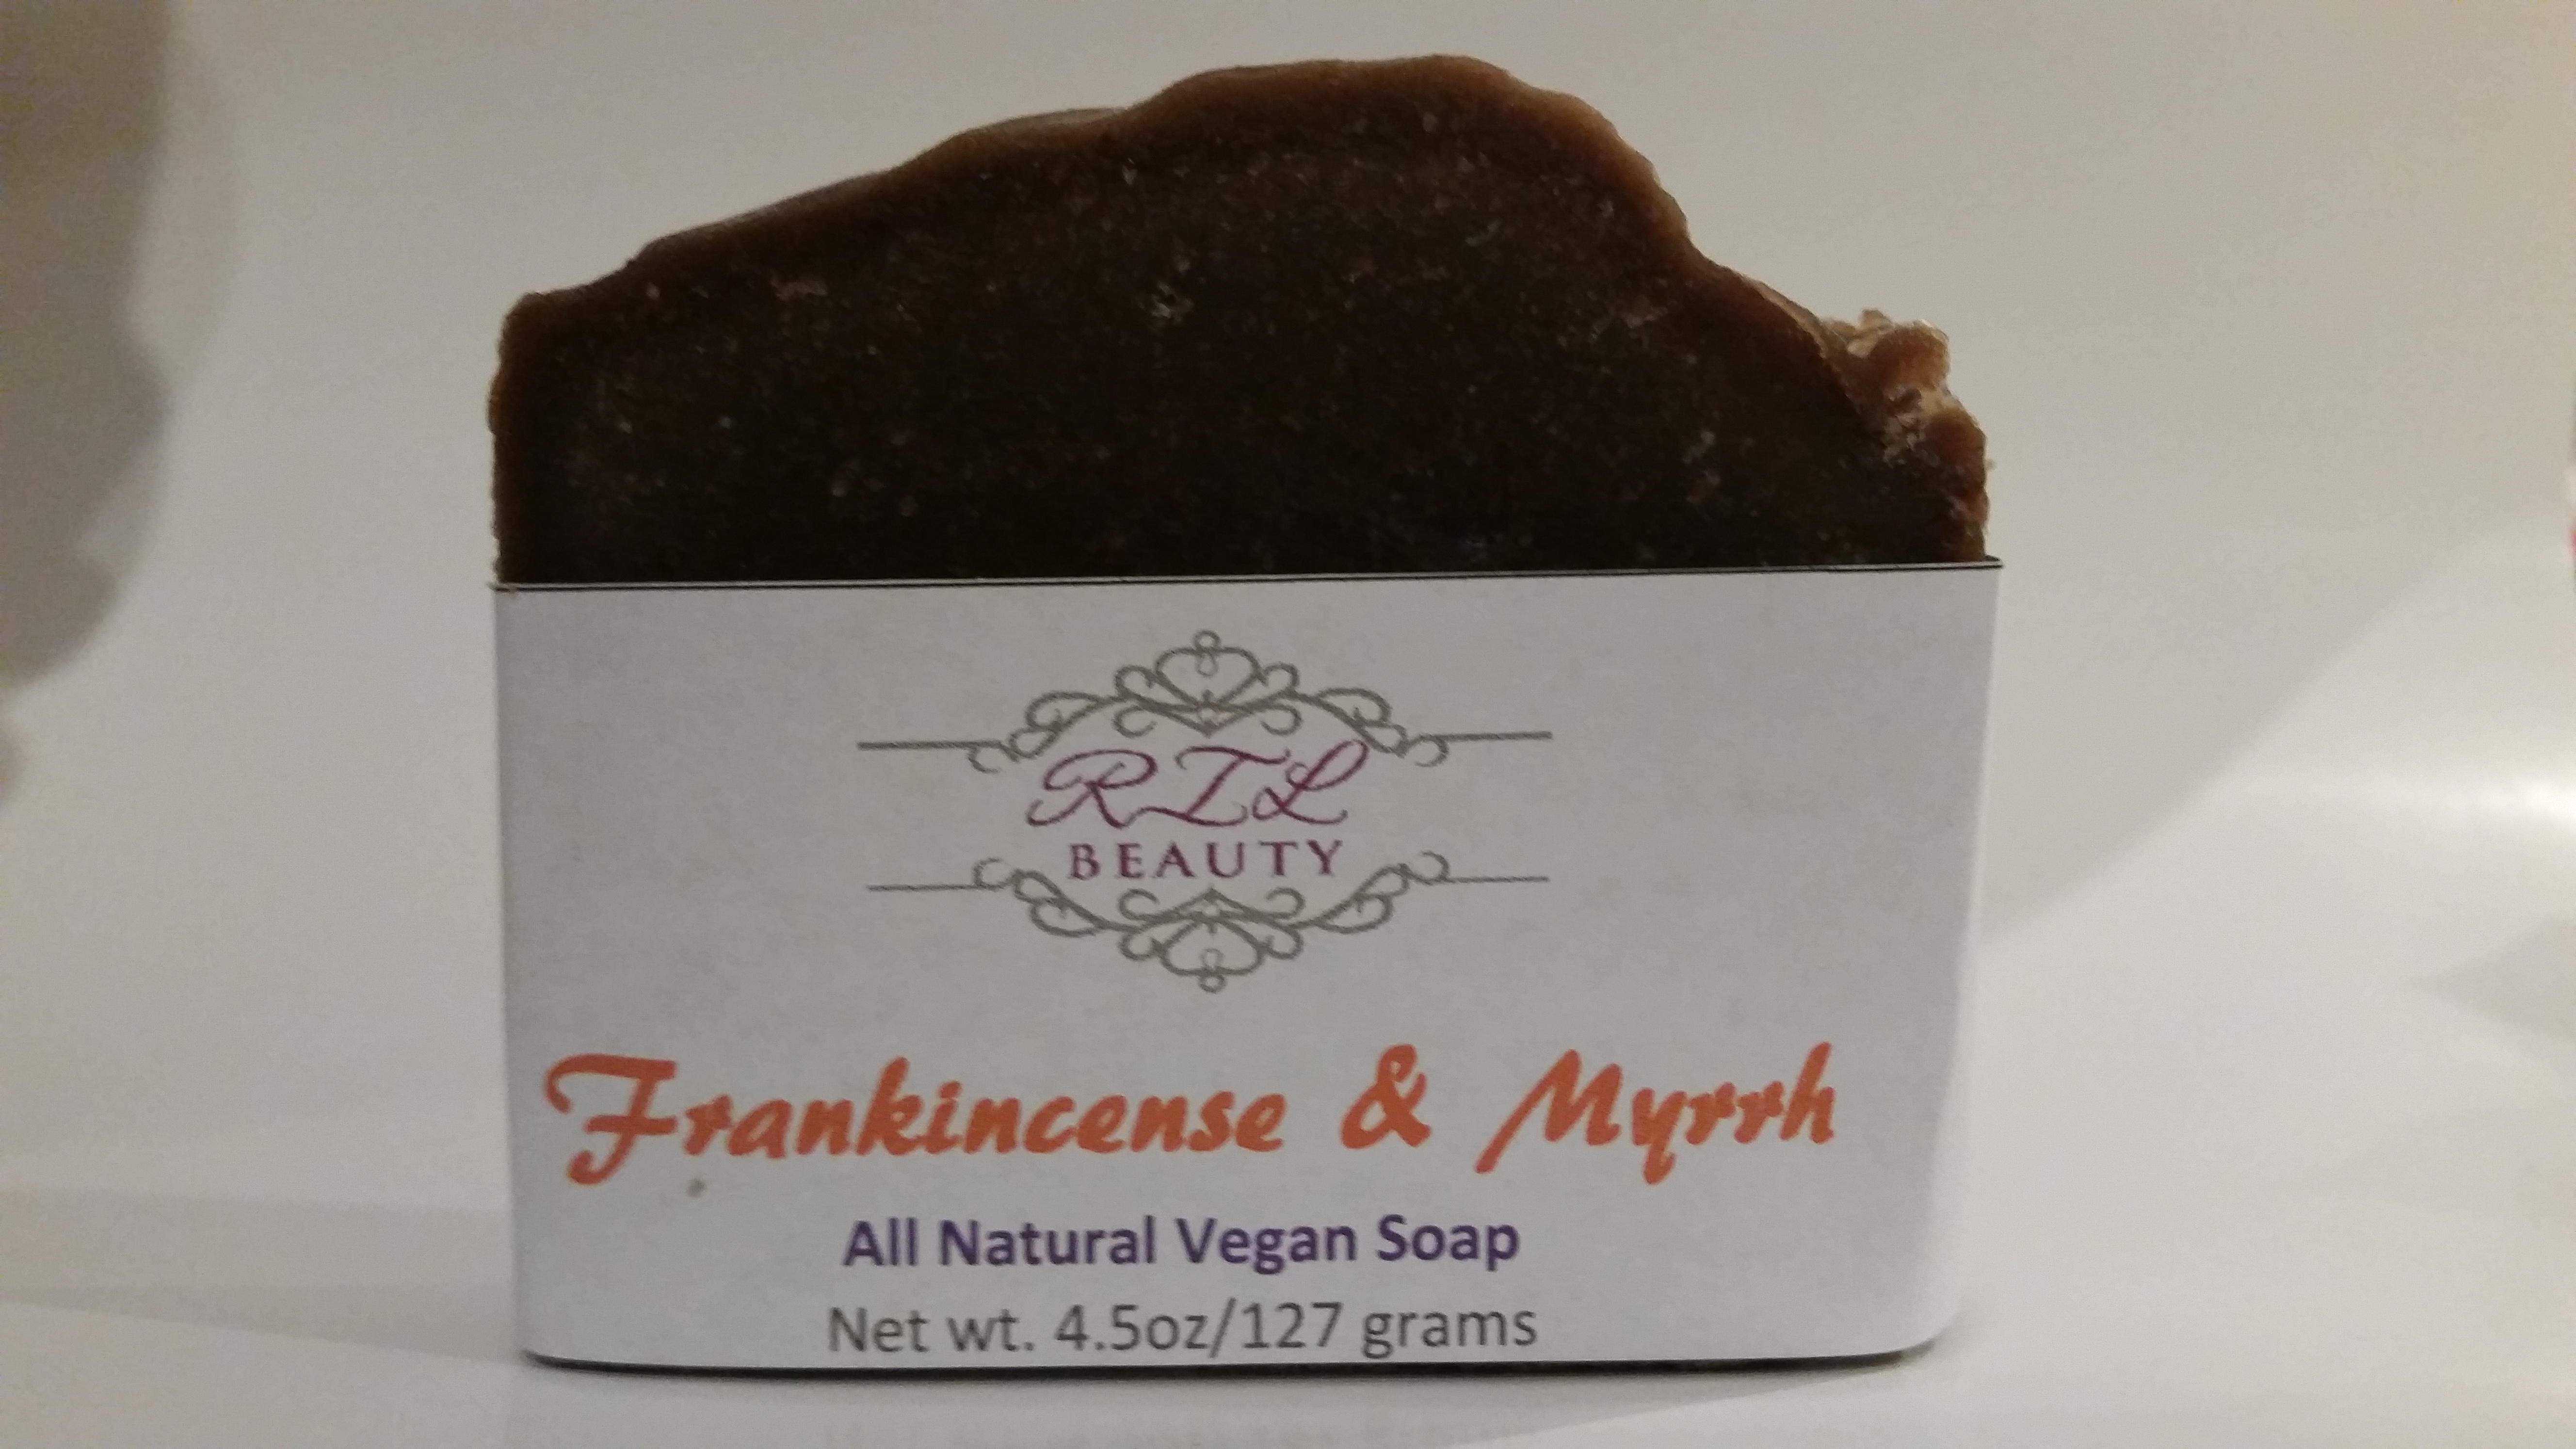 Frankincense & Myrrh Vegan Soap